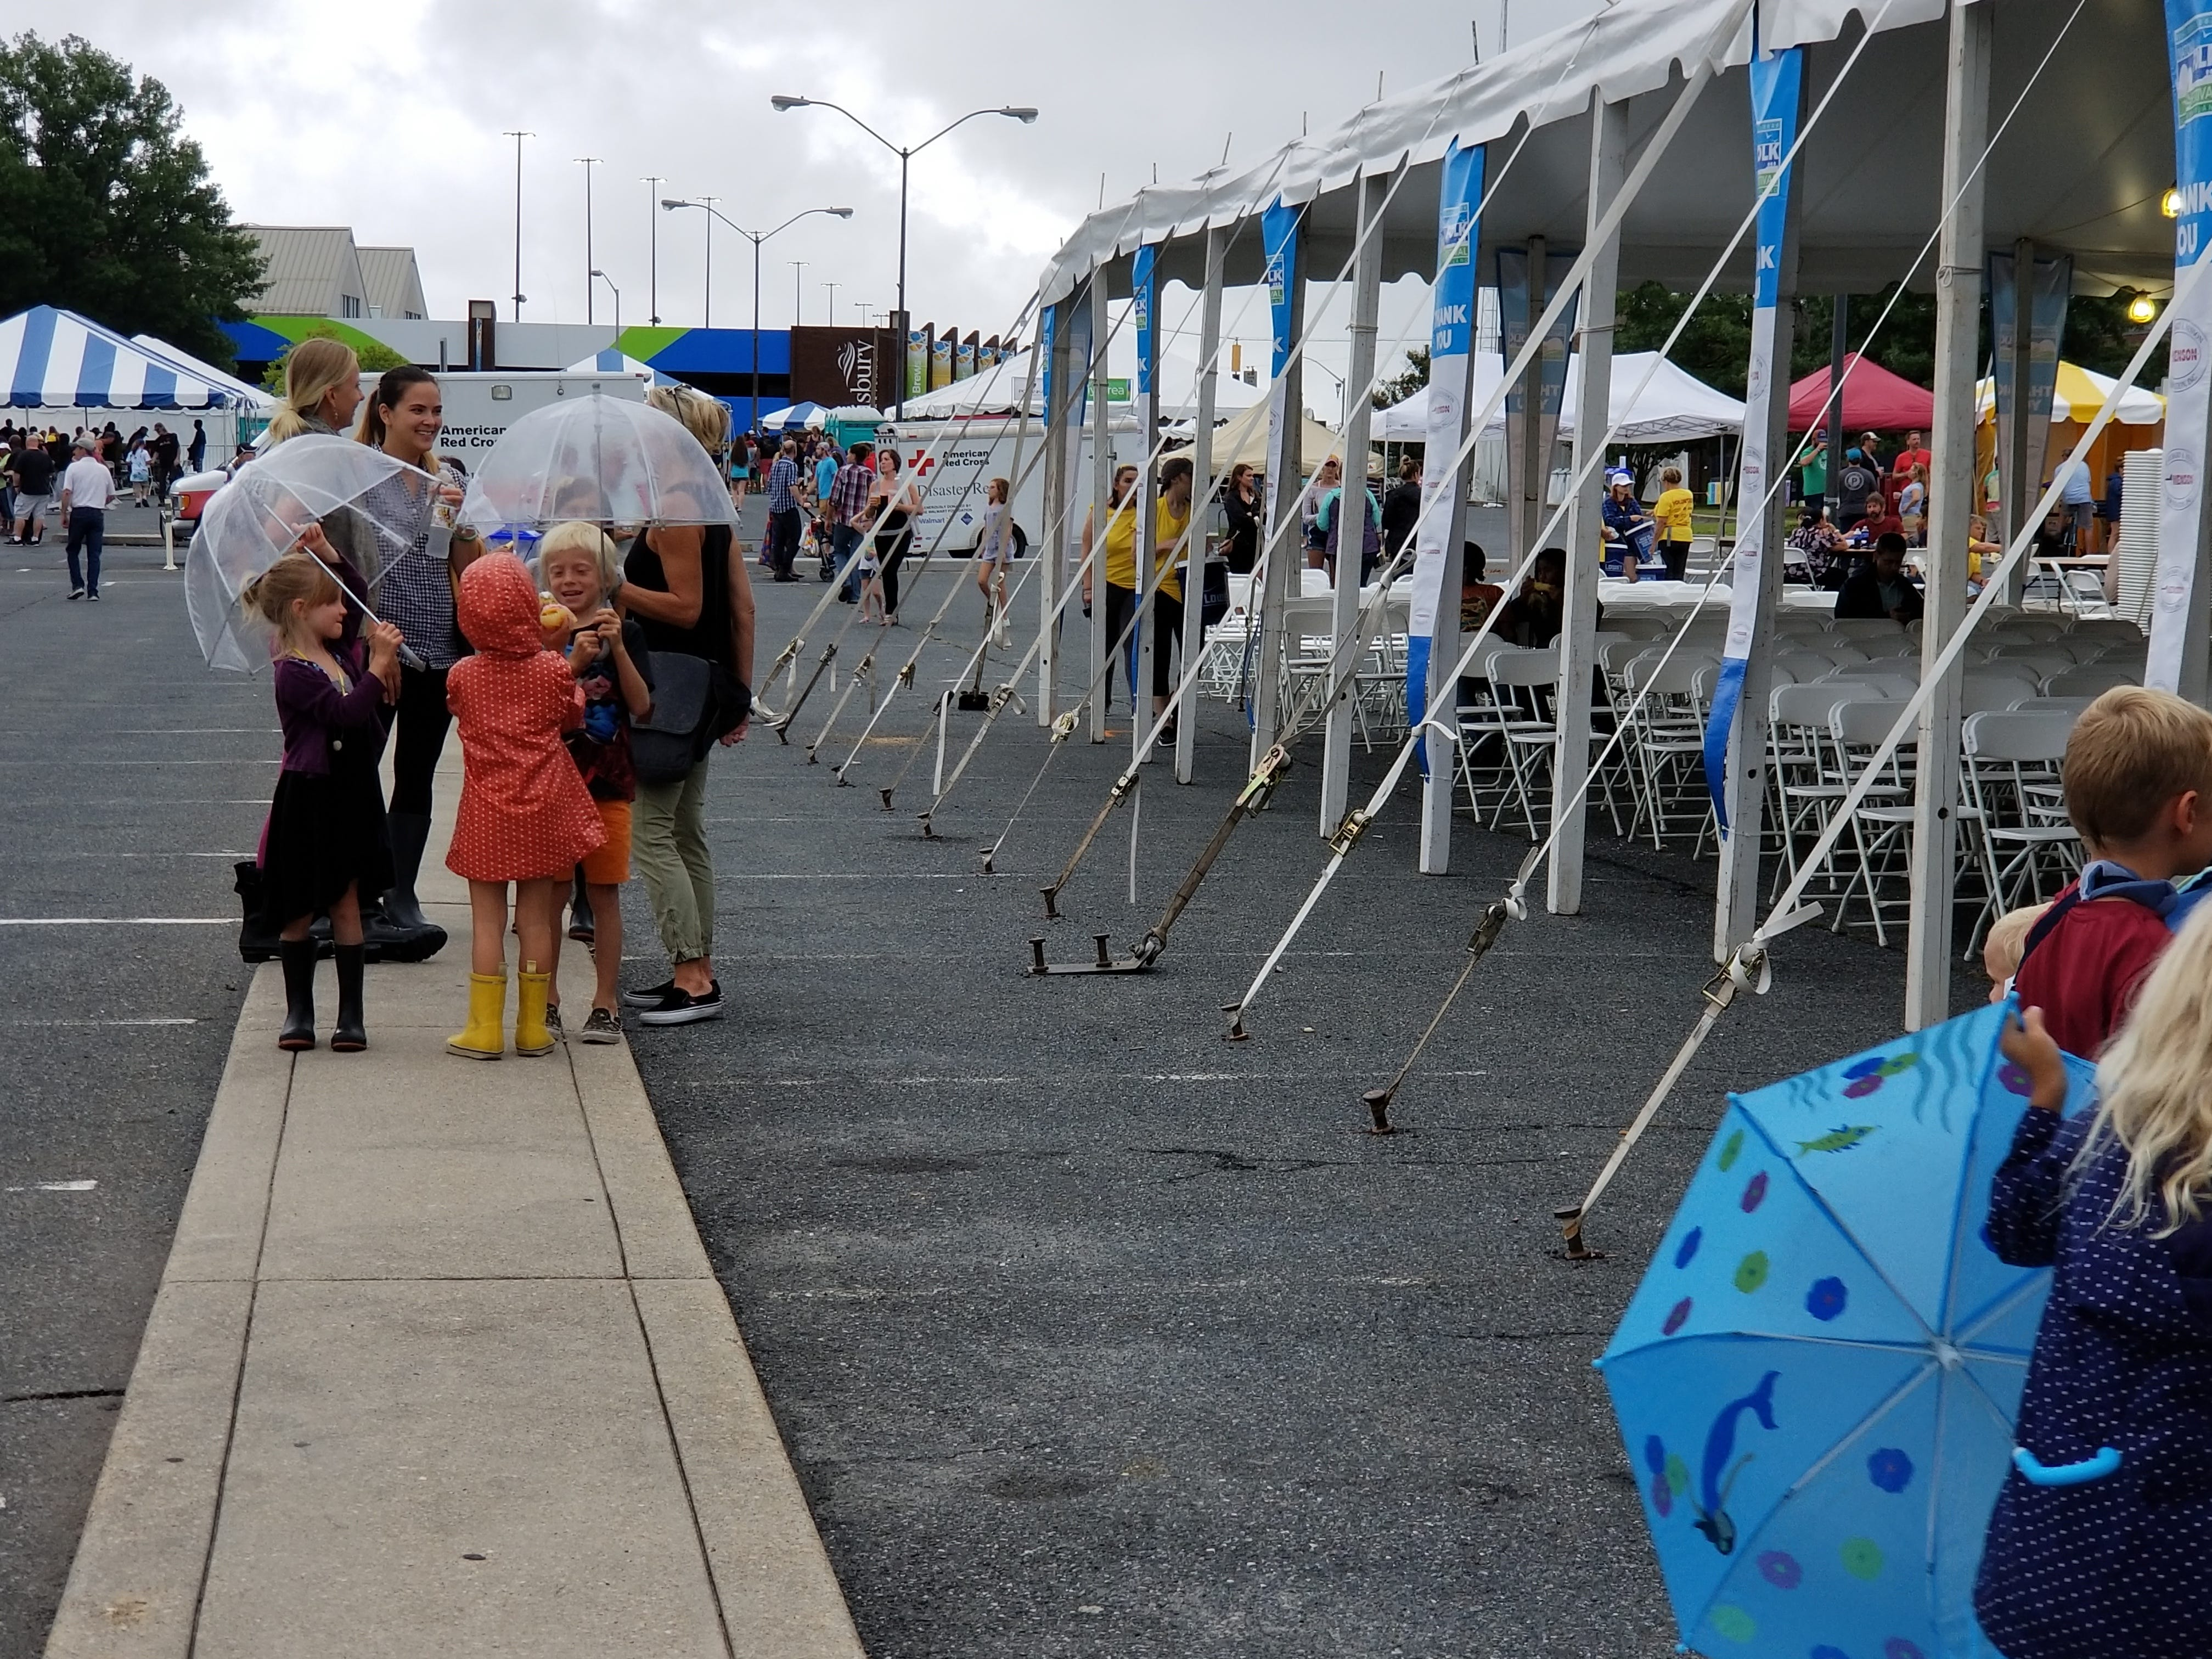 Visitors to the National Folk Festival in Salisbury, Maryland come prepared with umbrellas on Saturday, Sept. 8, 2018.